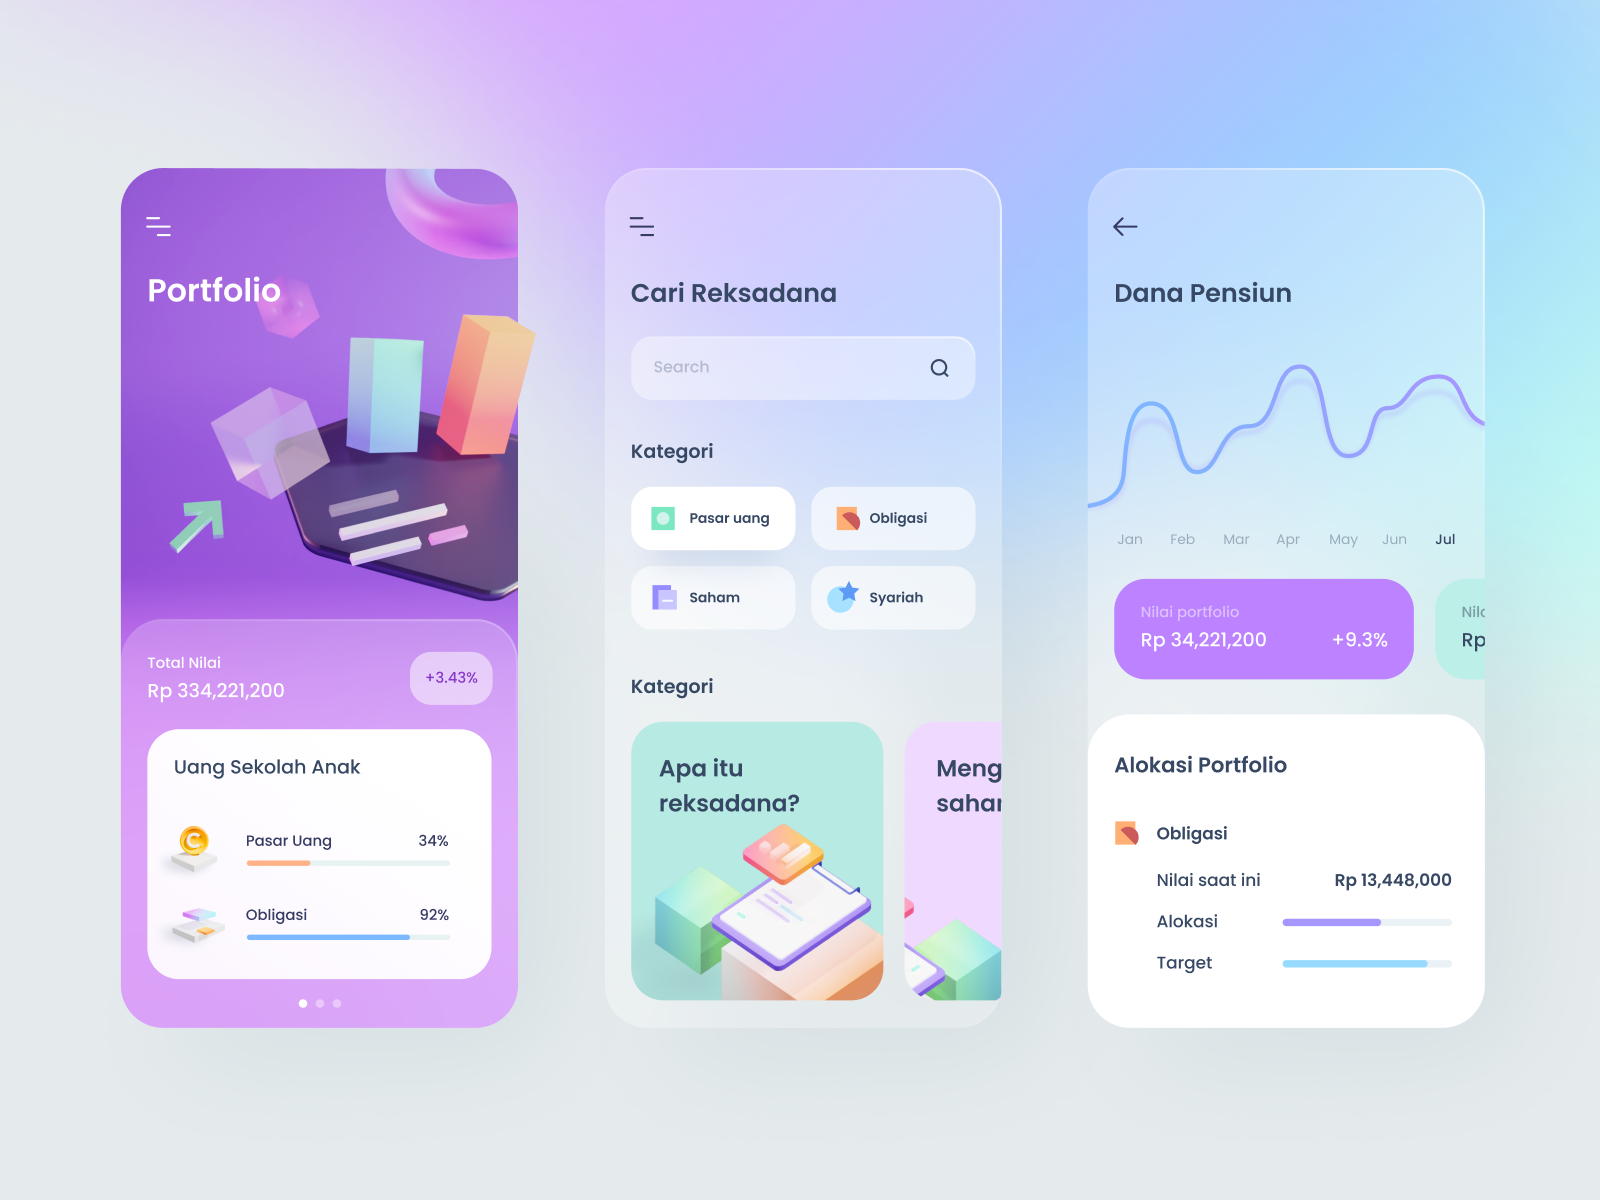 Dribbble - Tan Mau's blur series